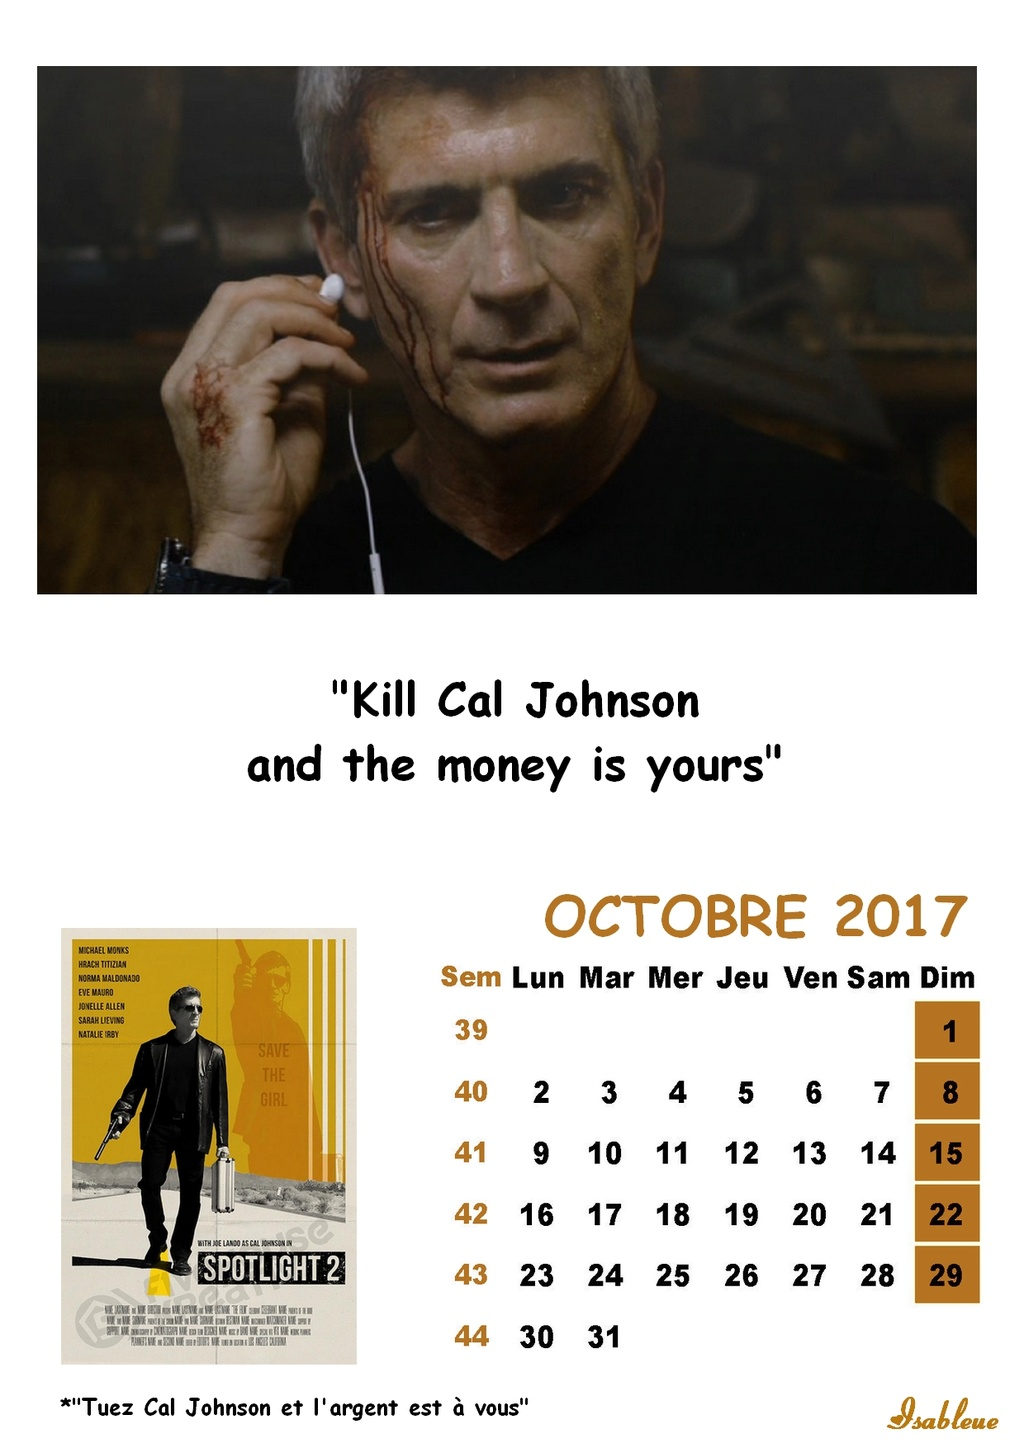 Calendriers 2017 - Page 2 10_20110